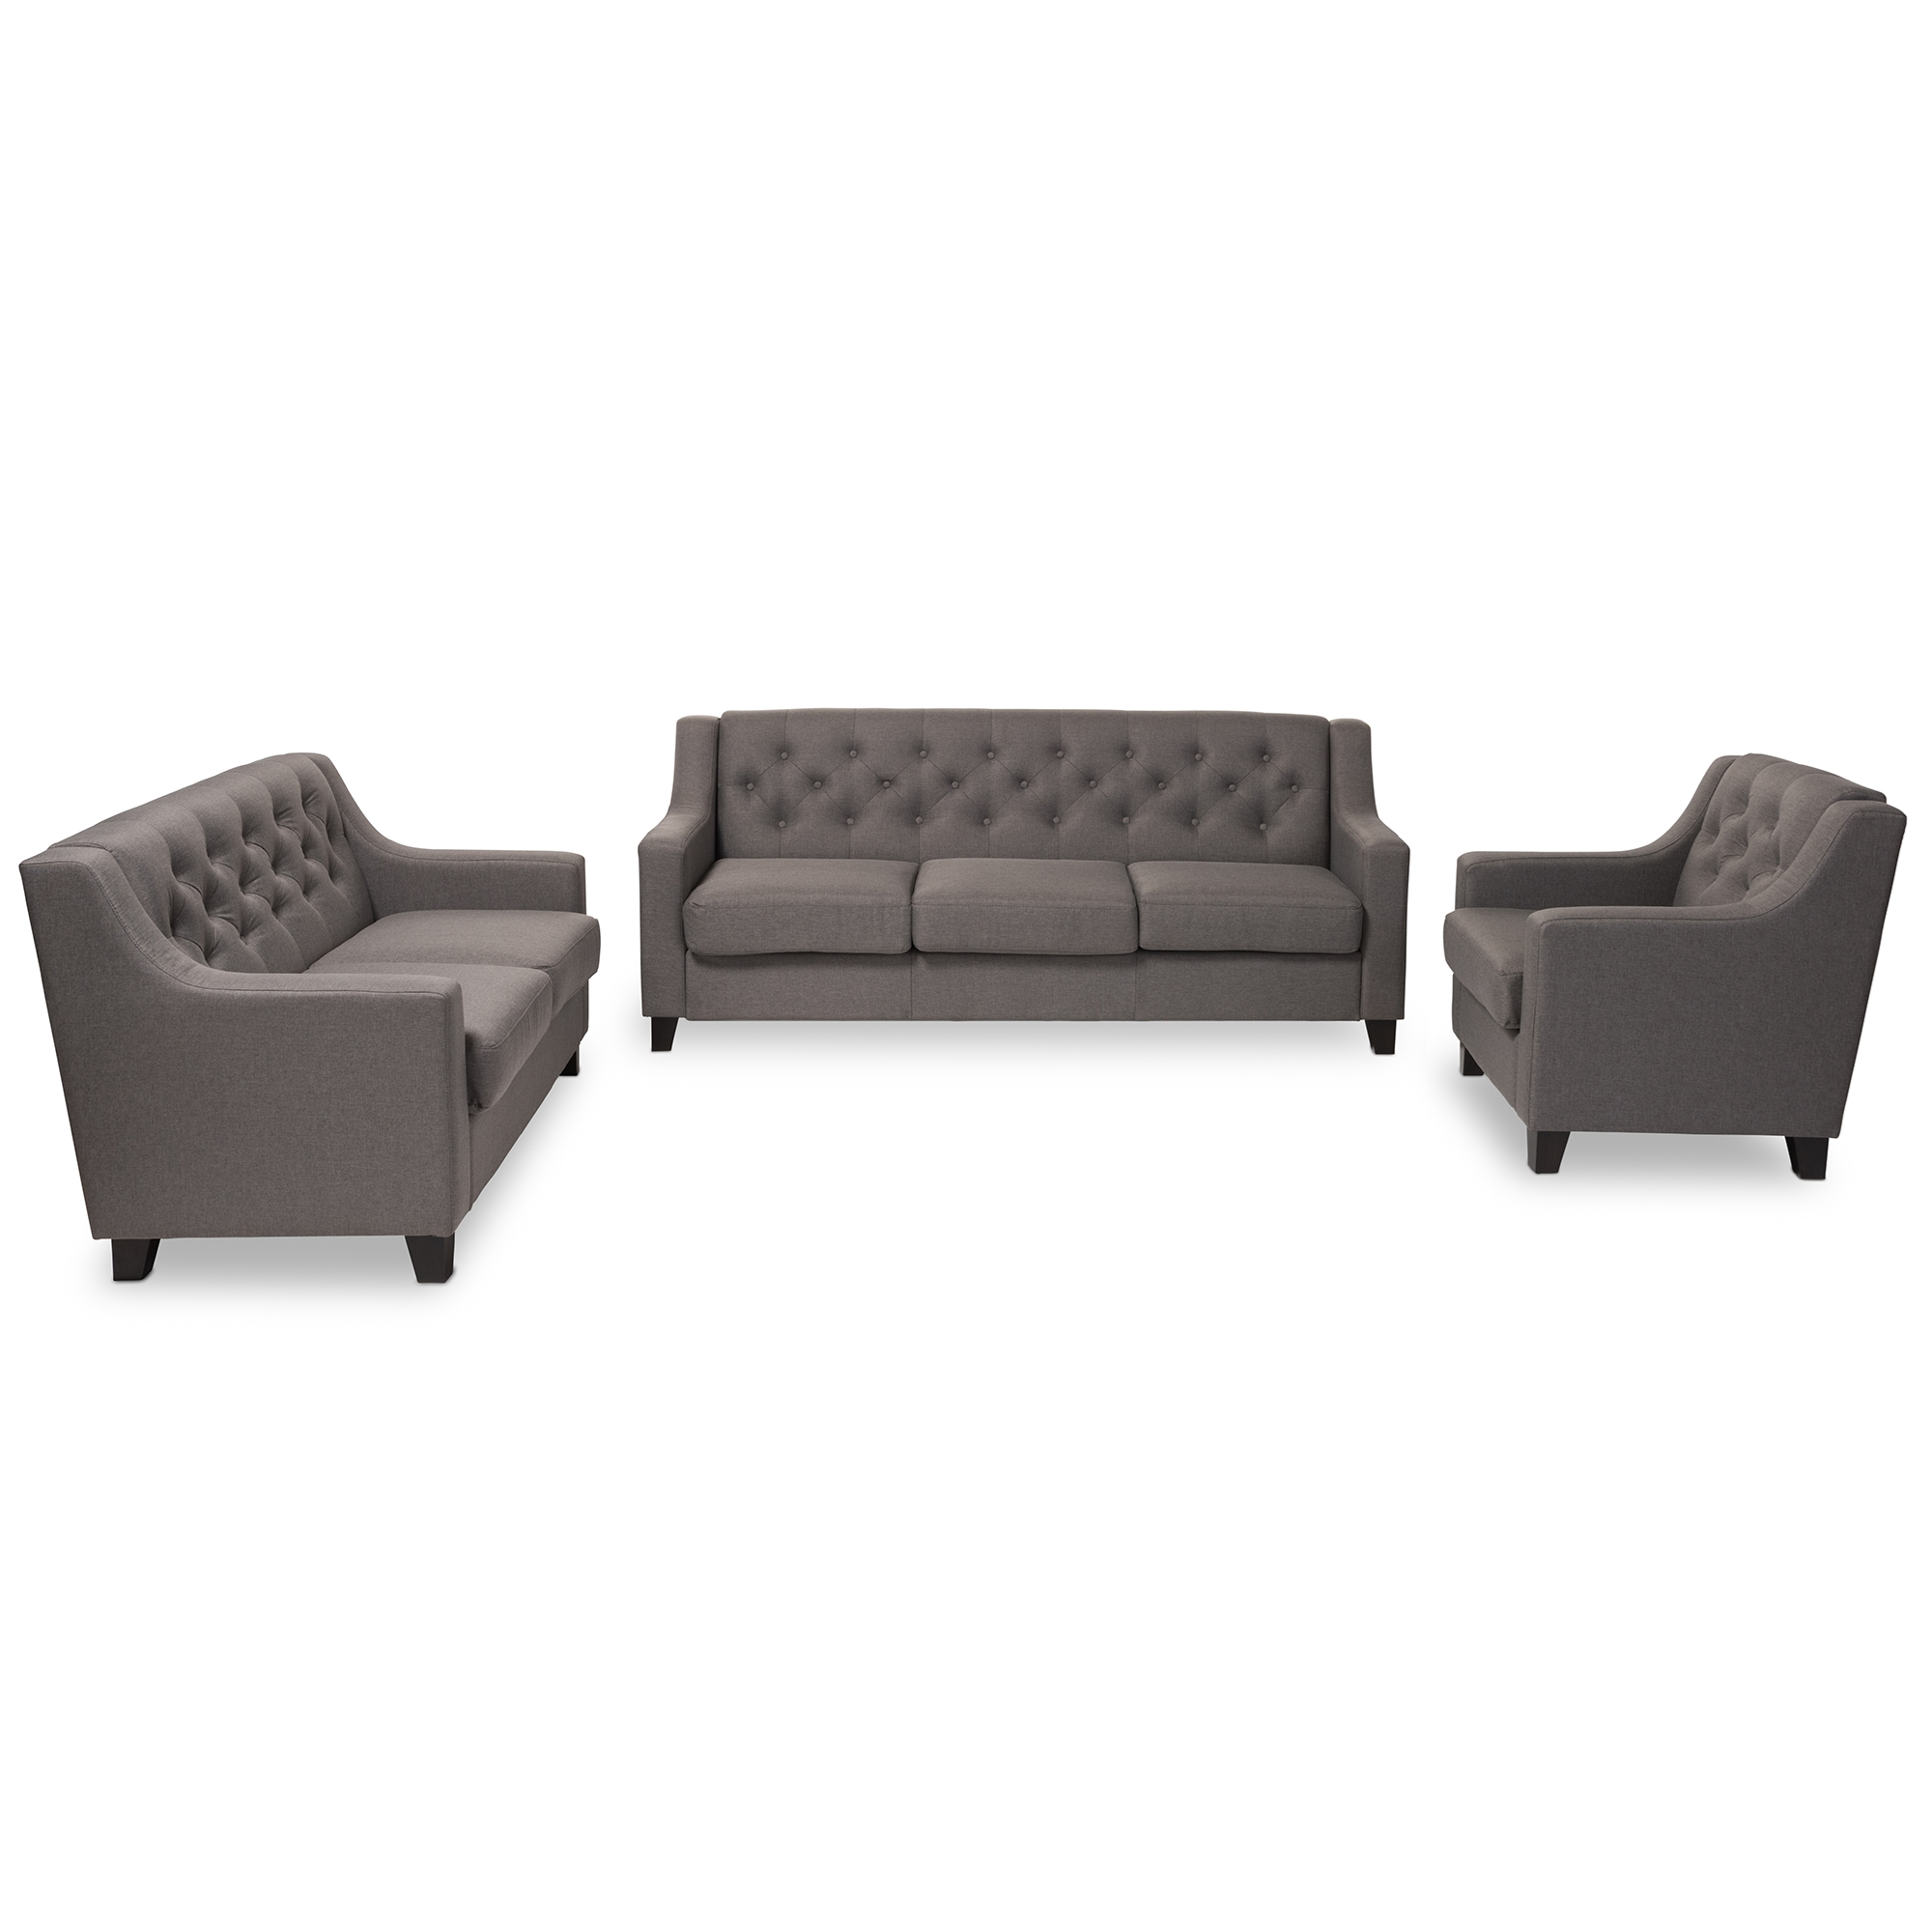 Baxton Studio Arcadia Modern And Contemporary Grey Fabric Upholstered  Button Tufted 3 Piece Living ...